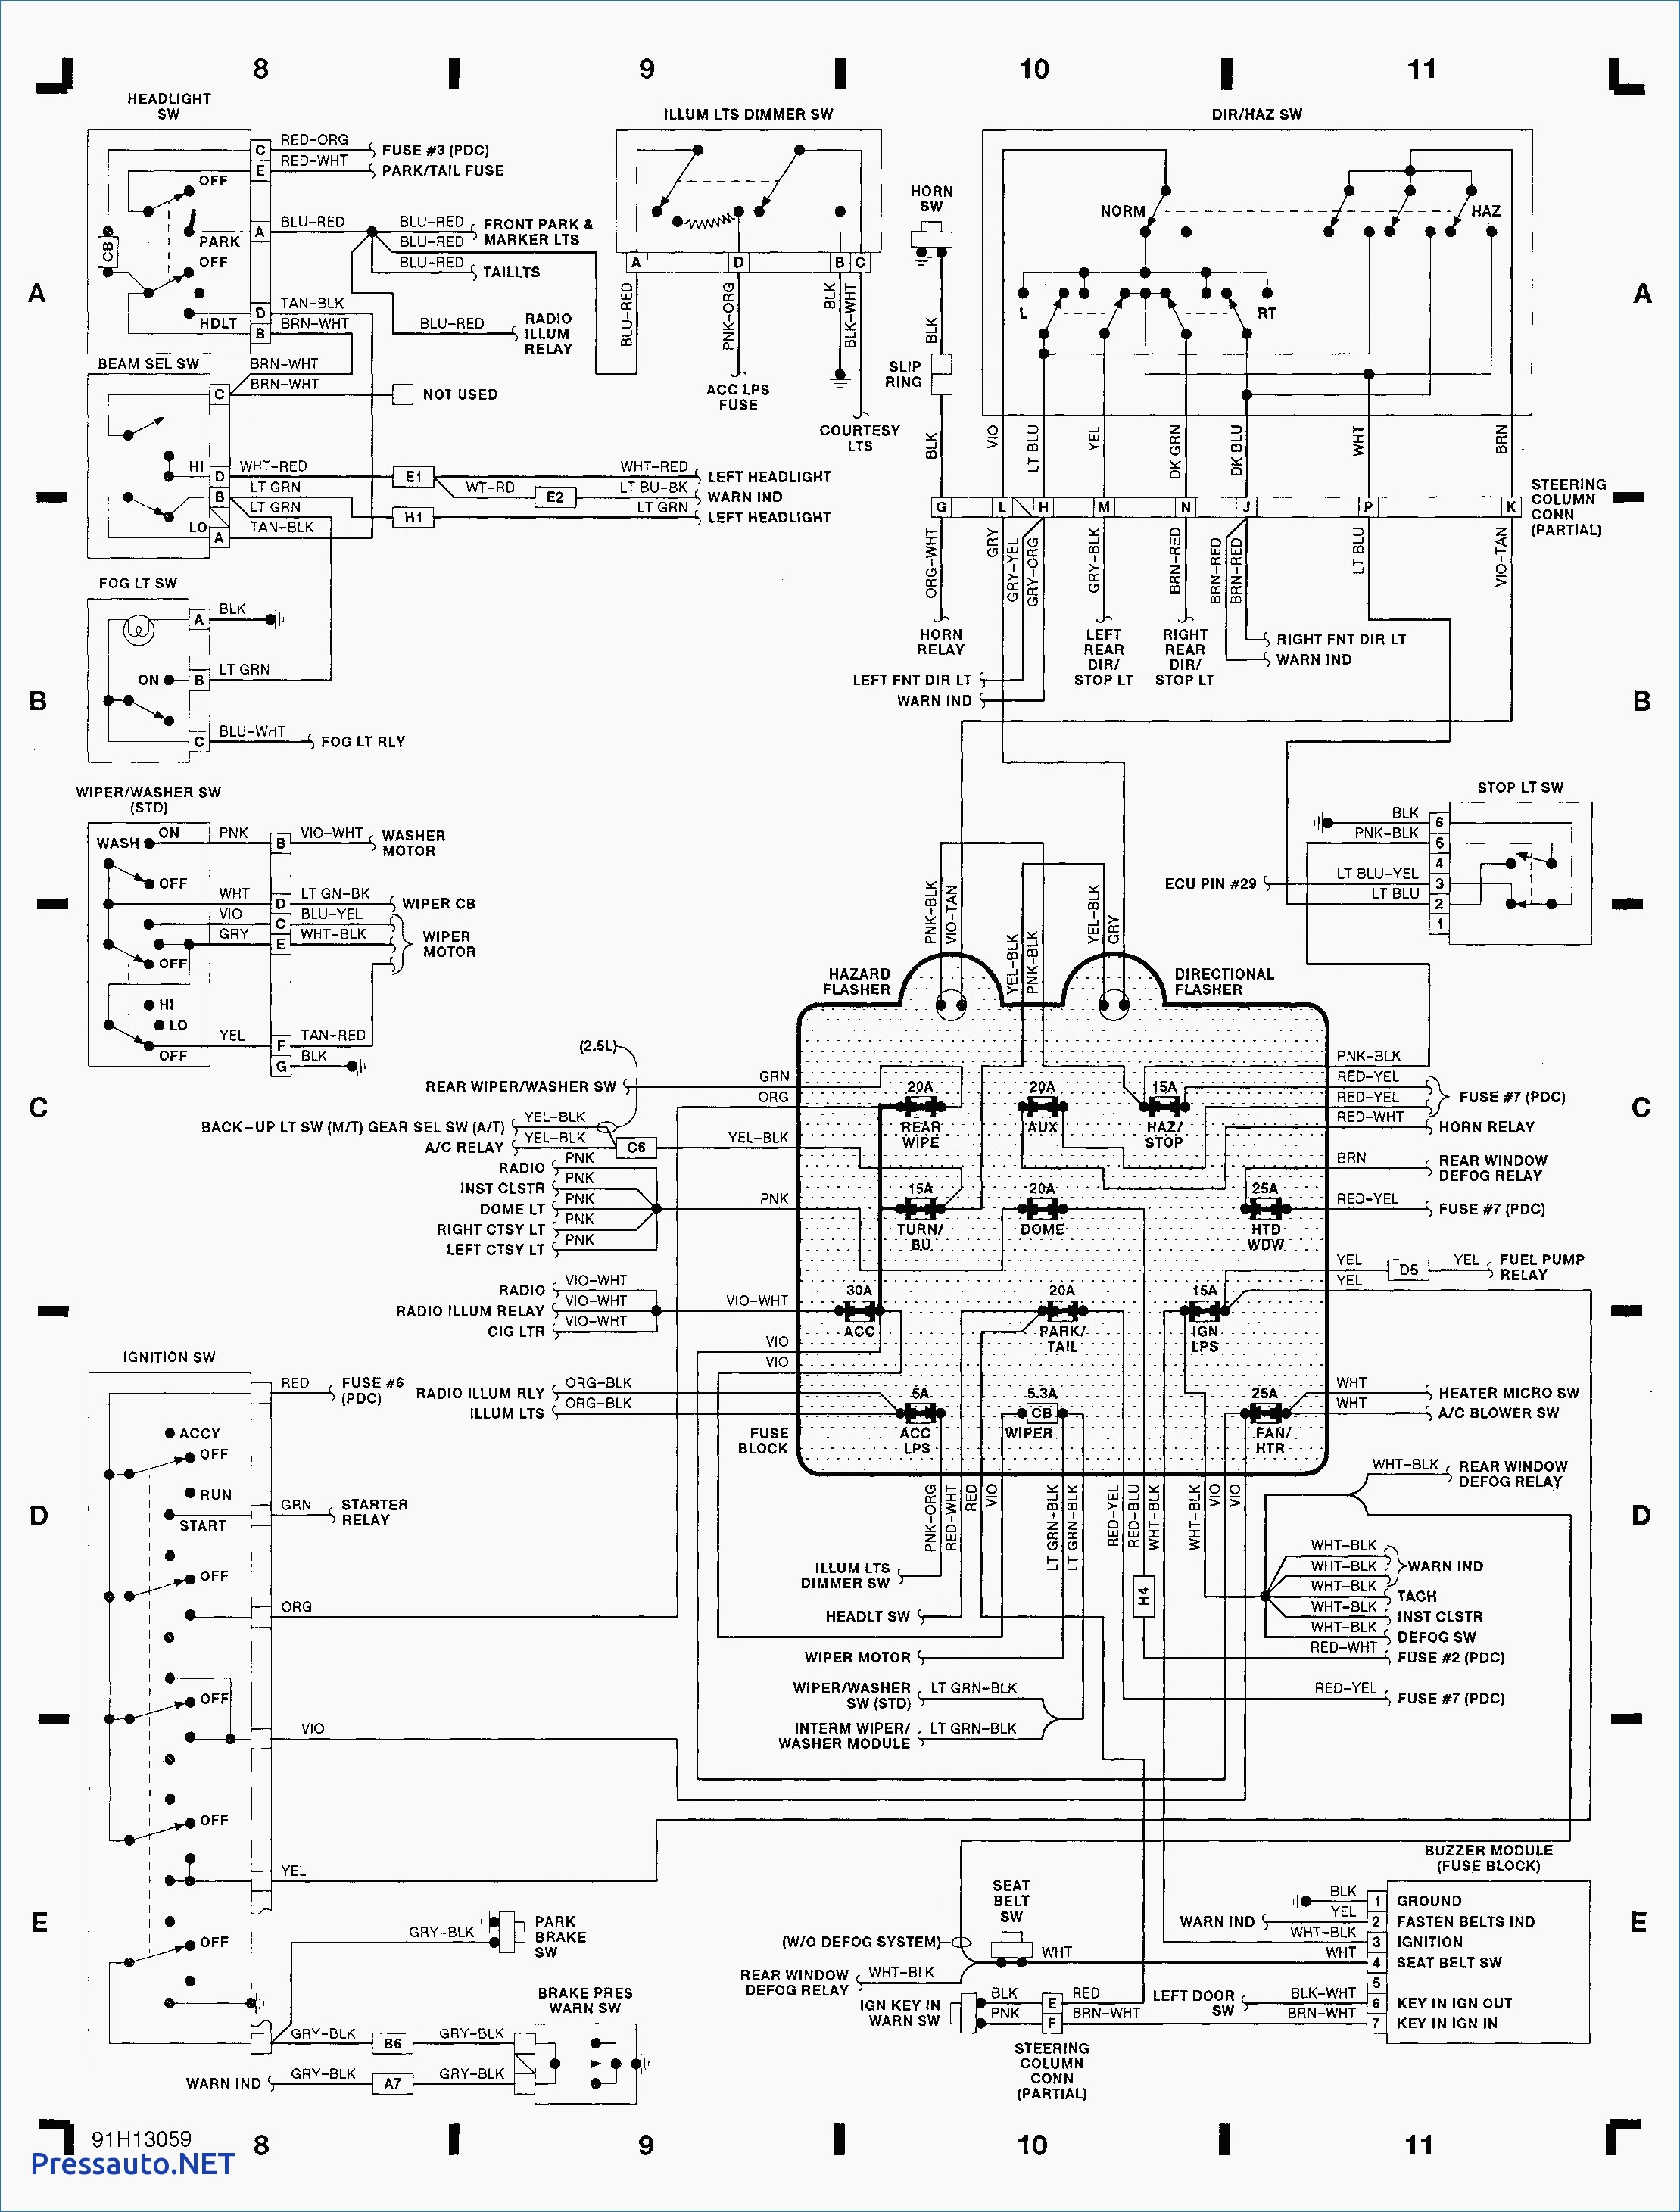 2014 Jeep Wrangler Wiring Harness Wiring Diagram Snow Alternator Snow Alternator Lasuiteclub It